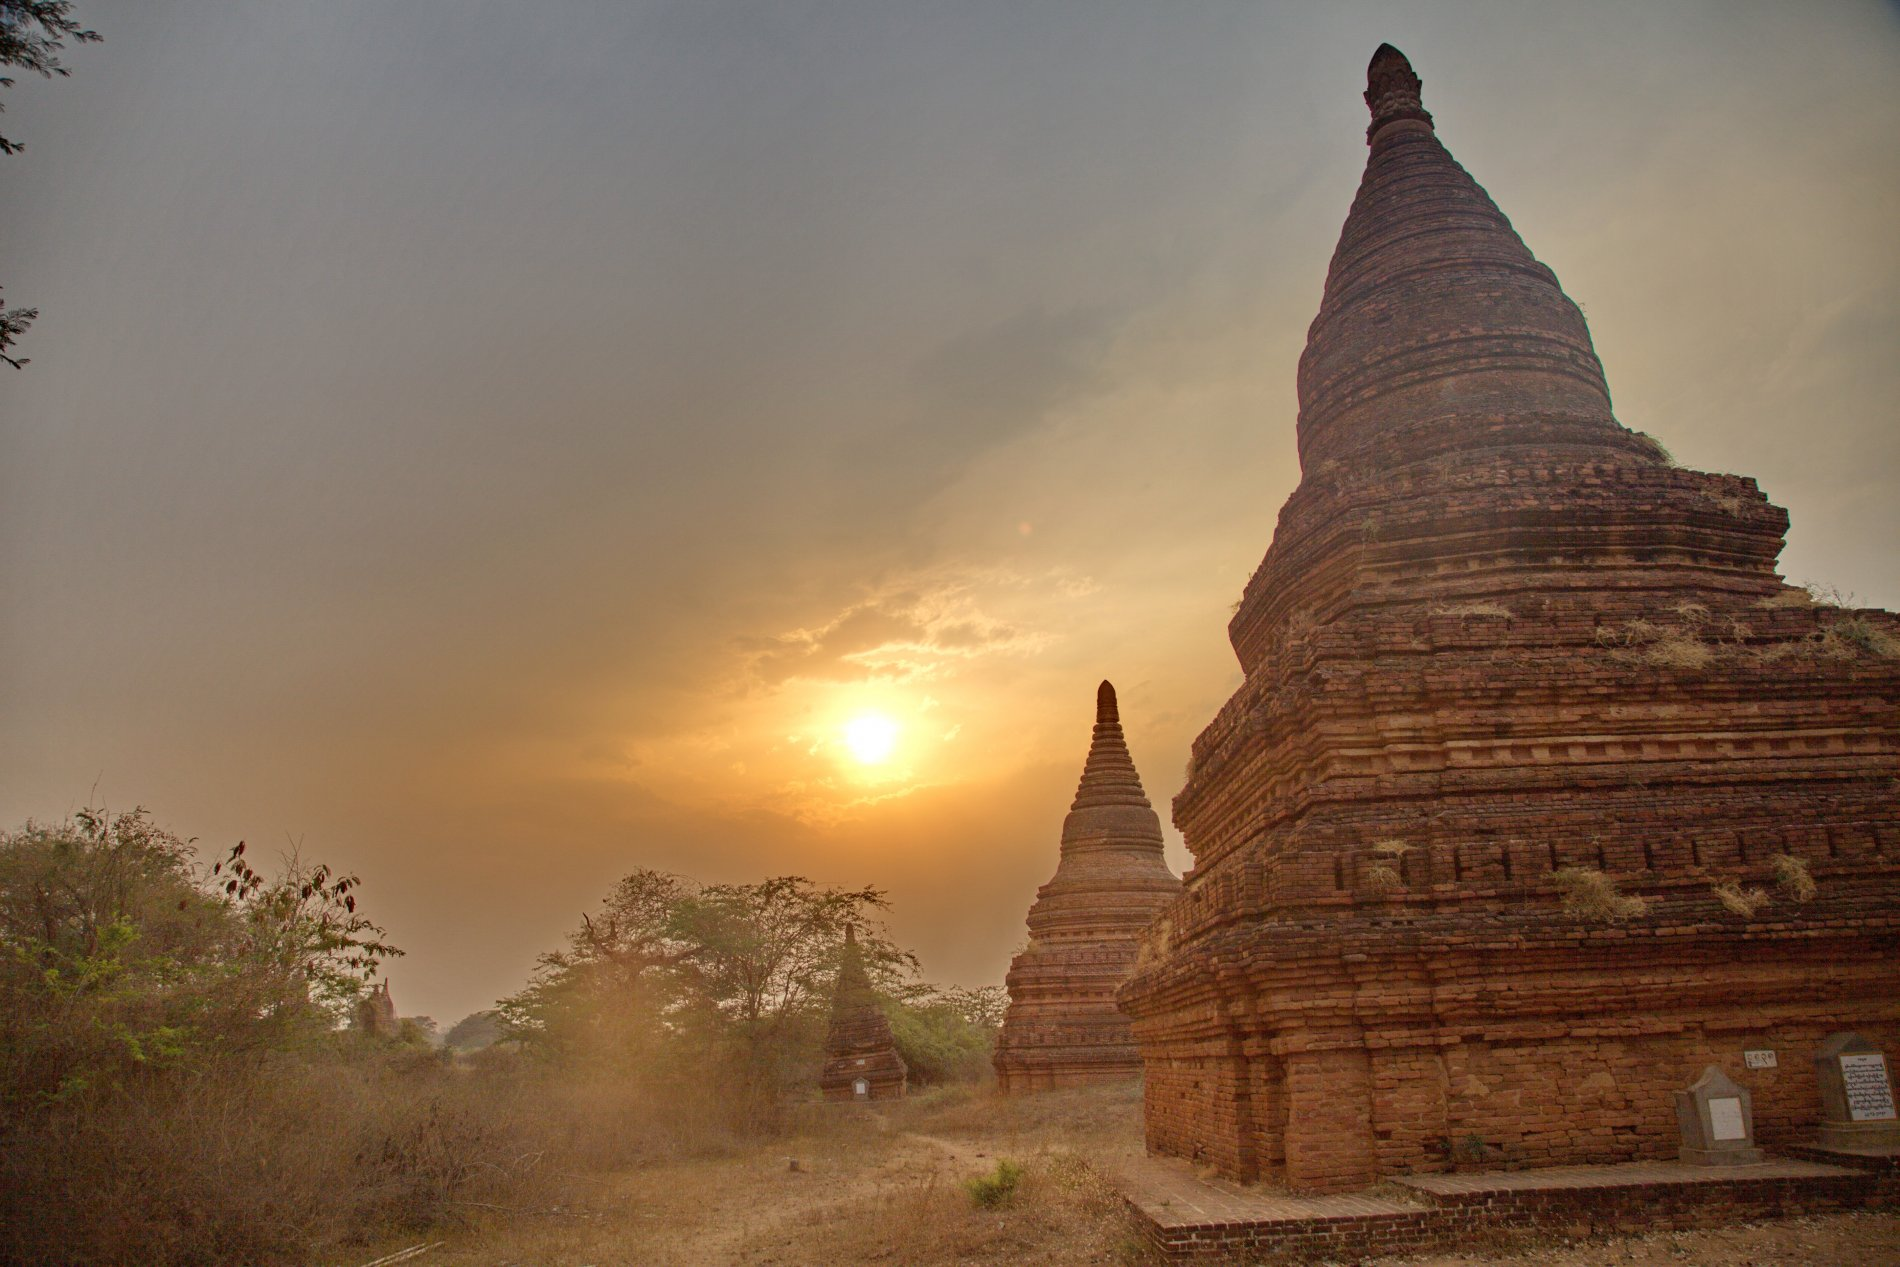 Bagan_169.jpg-commment